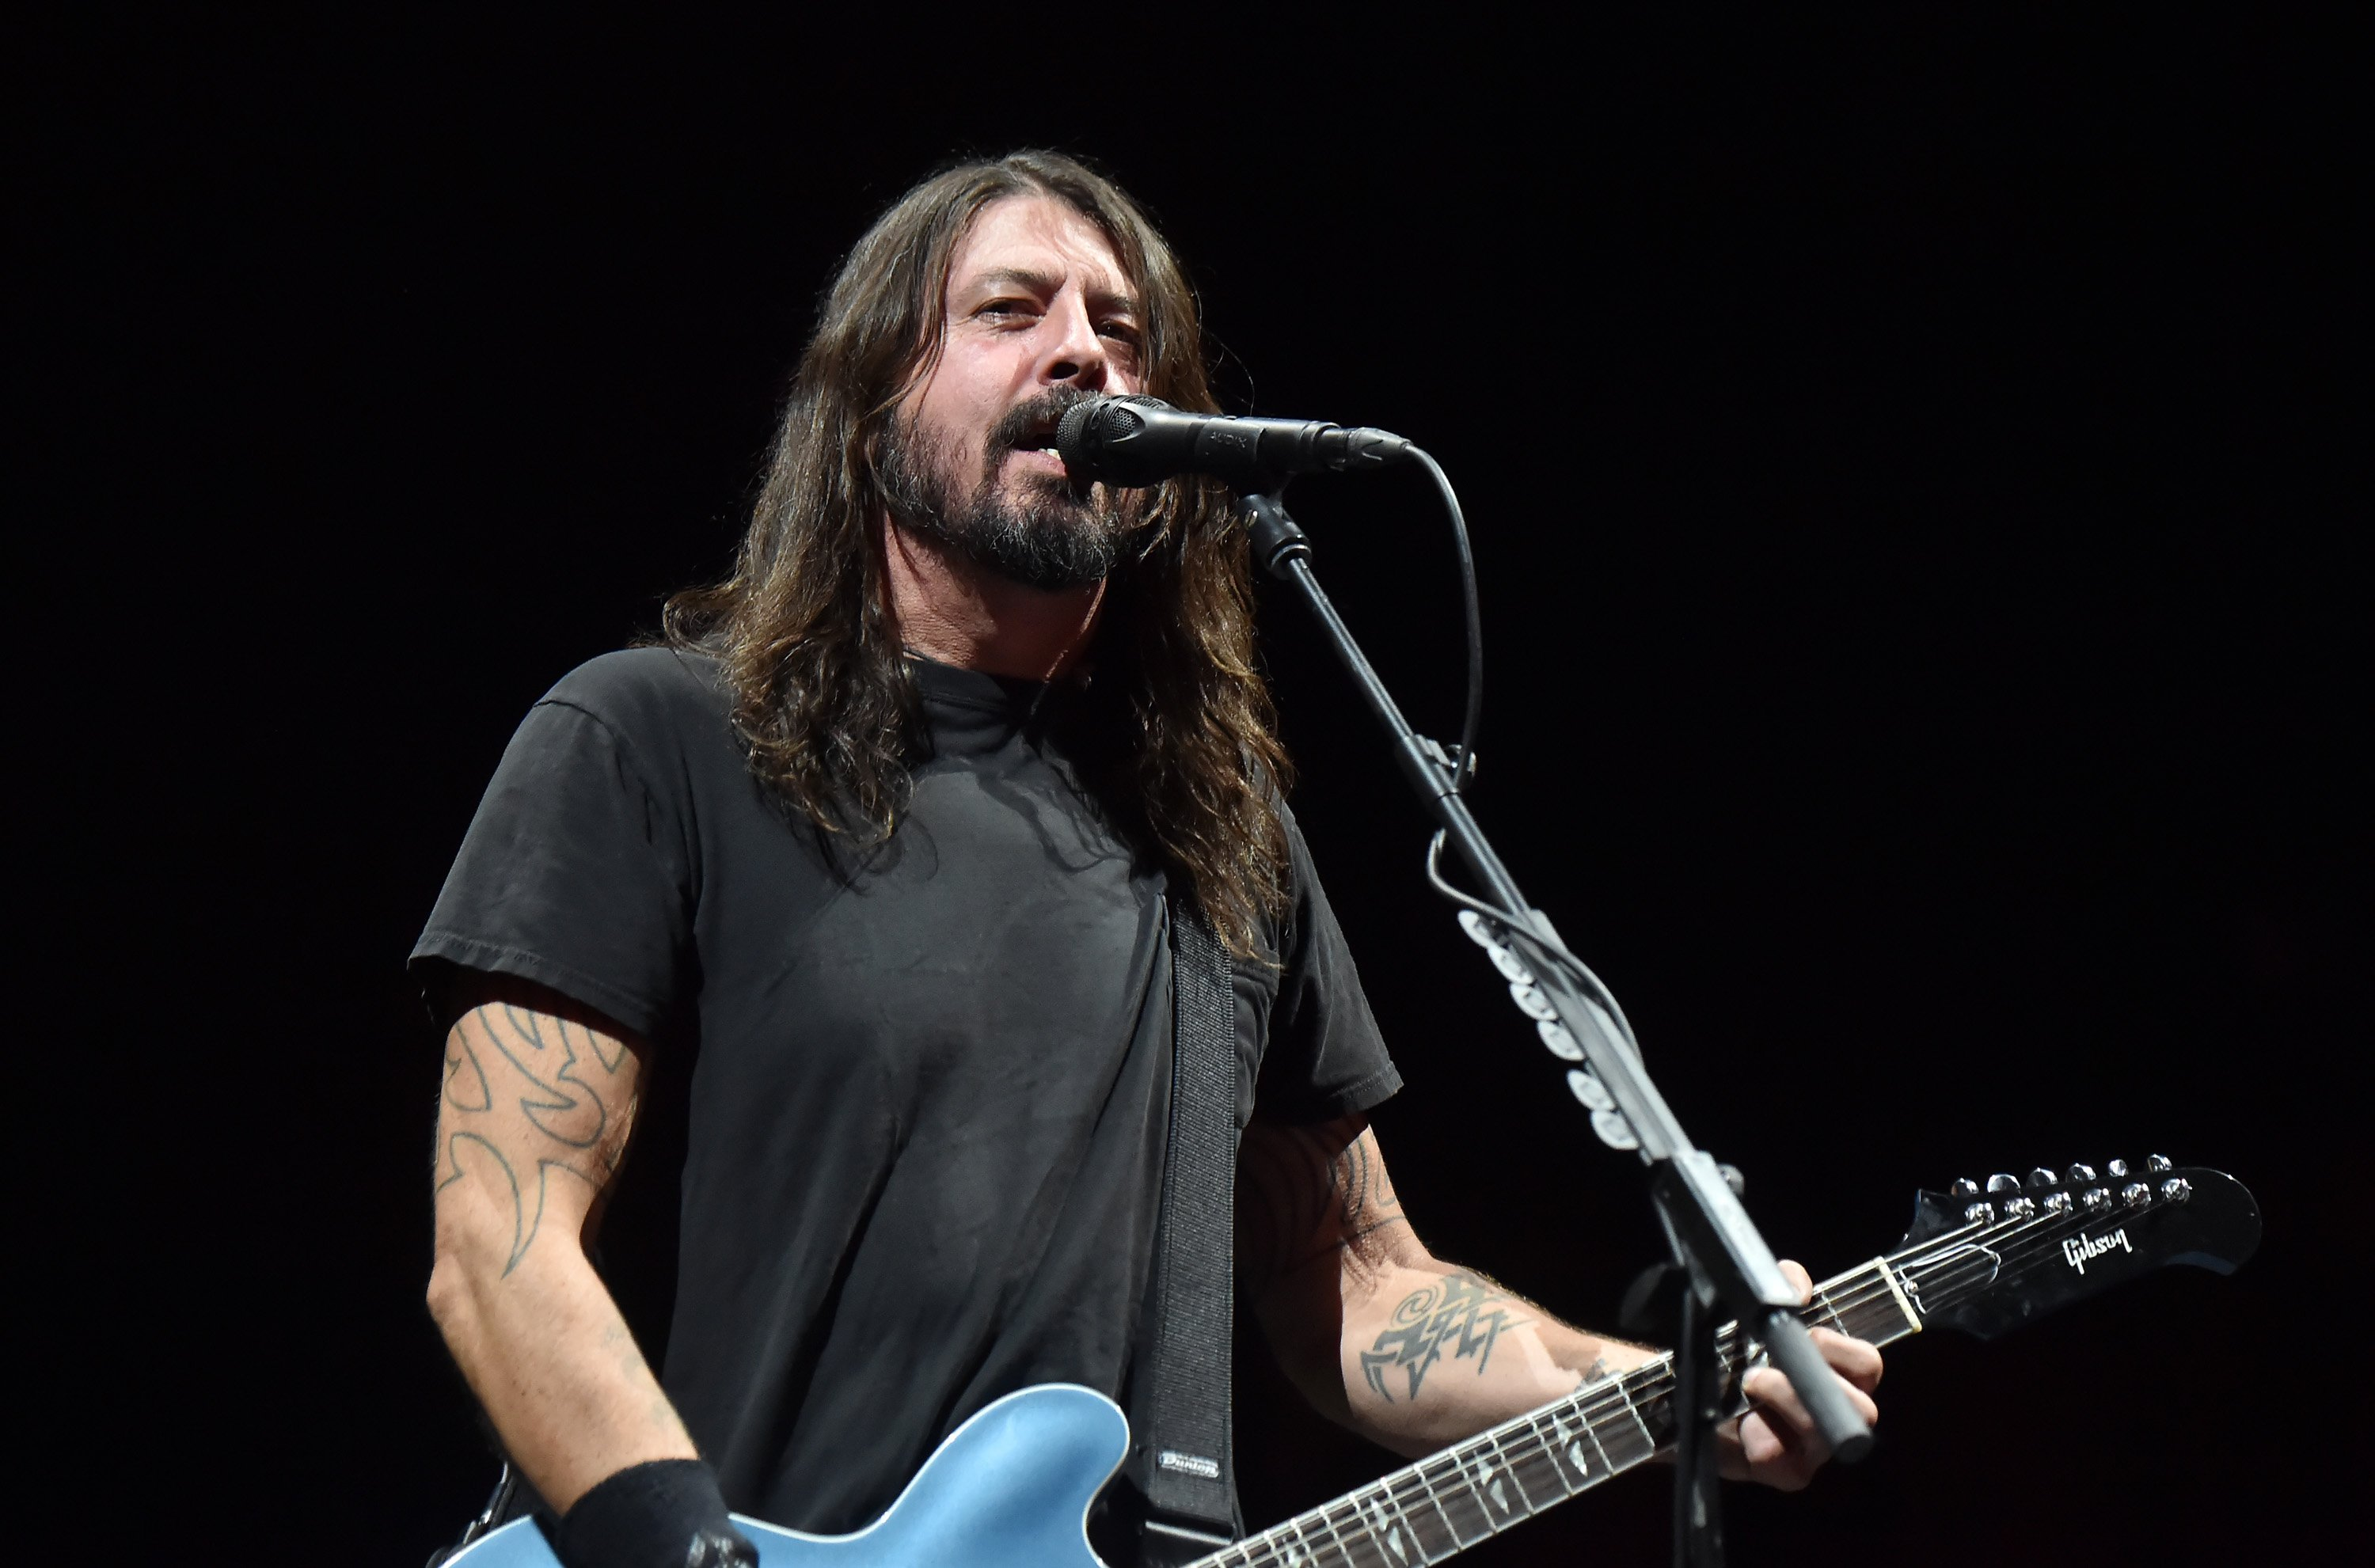 Dave Grohl performs onstage at Maracana on January 25, 2015 in Rio de Janeiro, Brazil.   Photo: Getty Images